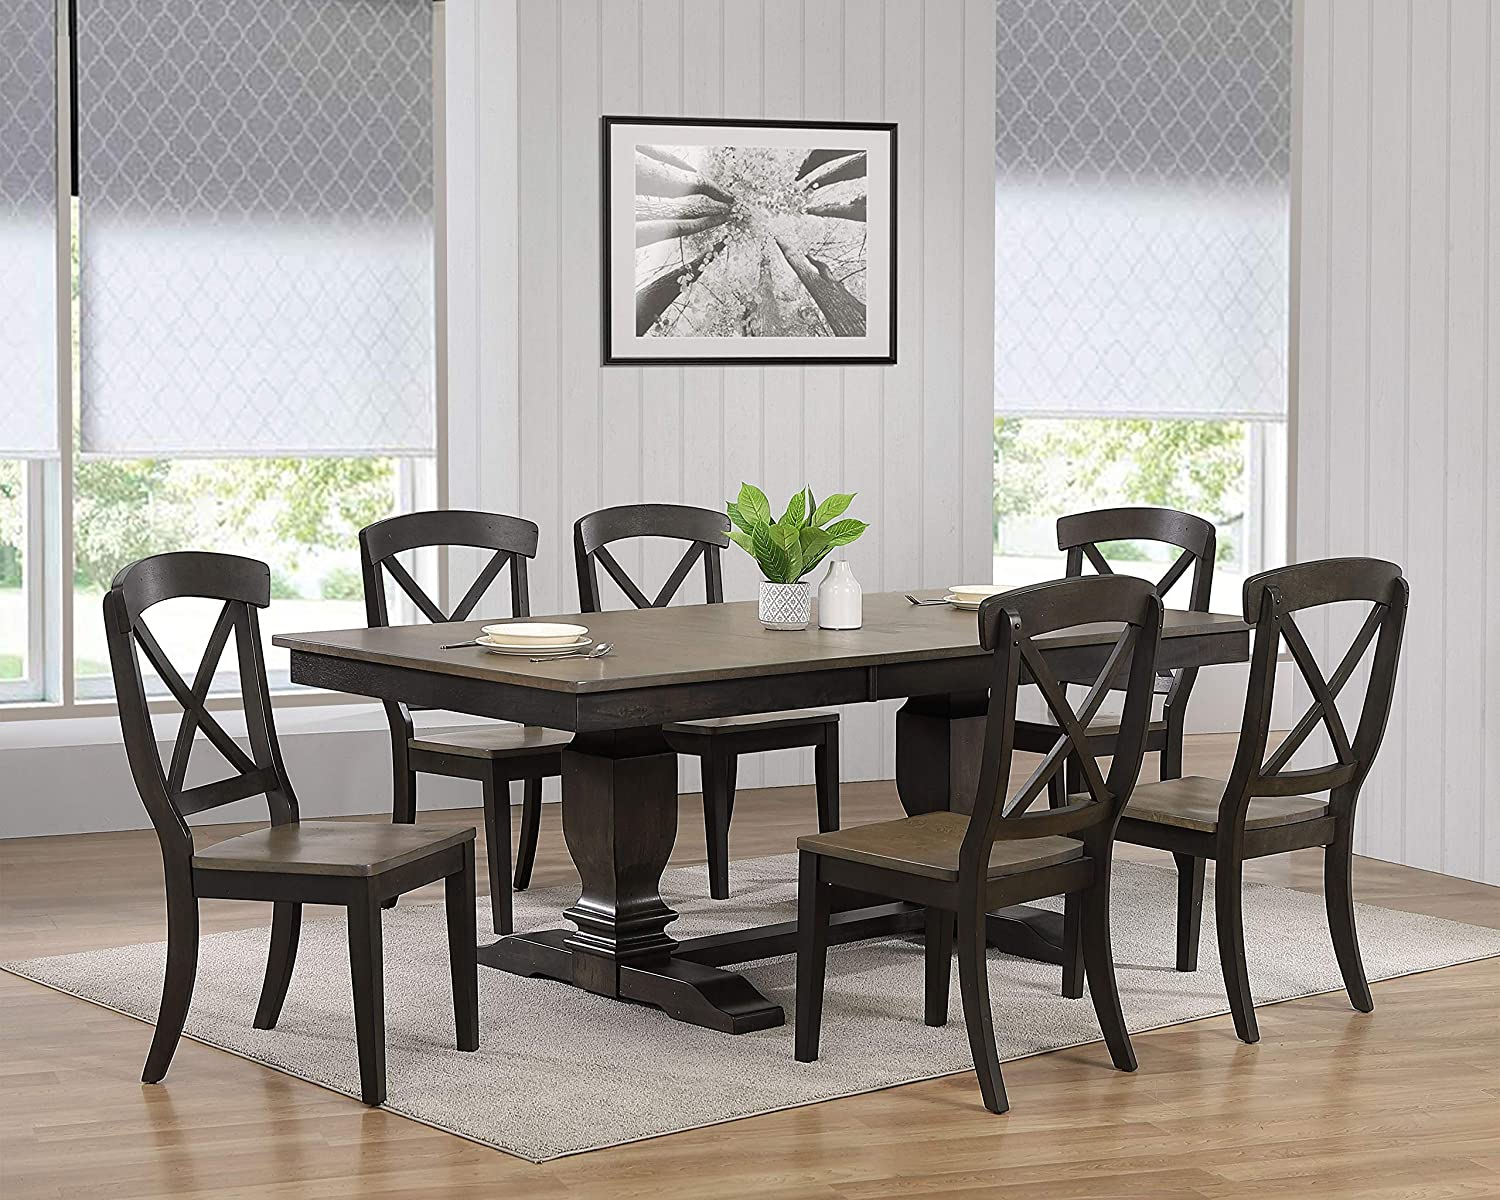 Amazon Com Iconic Furniture Company Rt82 Tr Ch60grsbks 7 7 Piece Dining Set Antique Grey Stone Black Stone Table Chair Sets